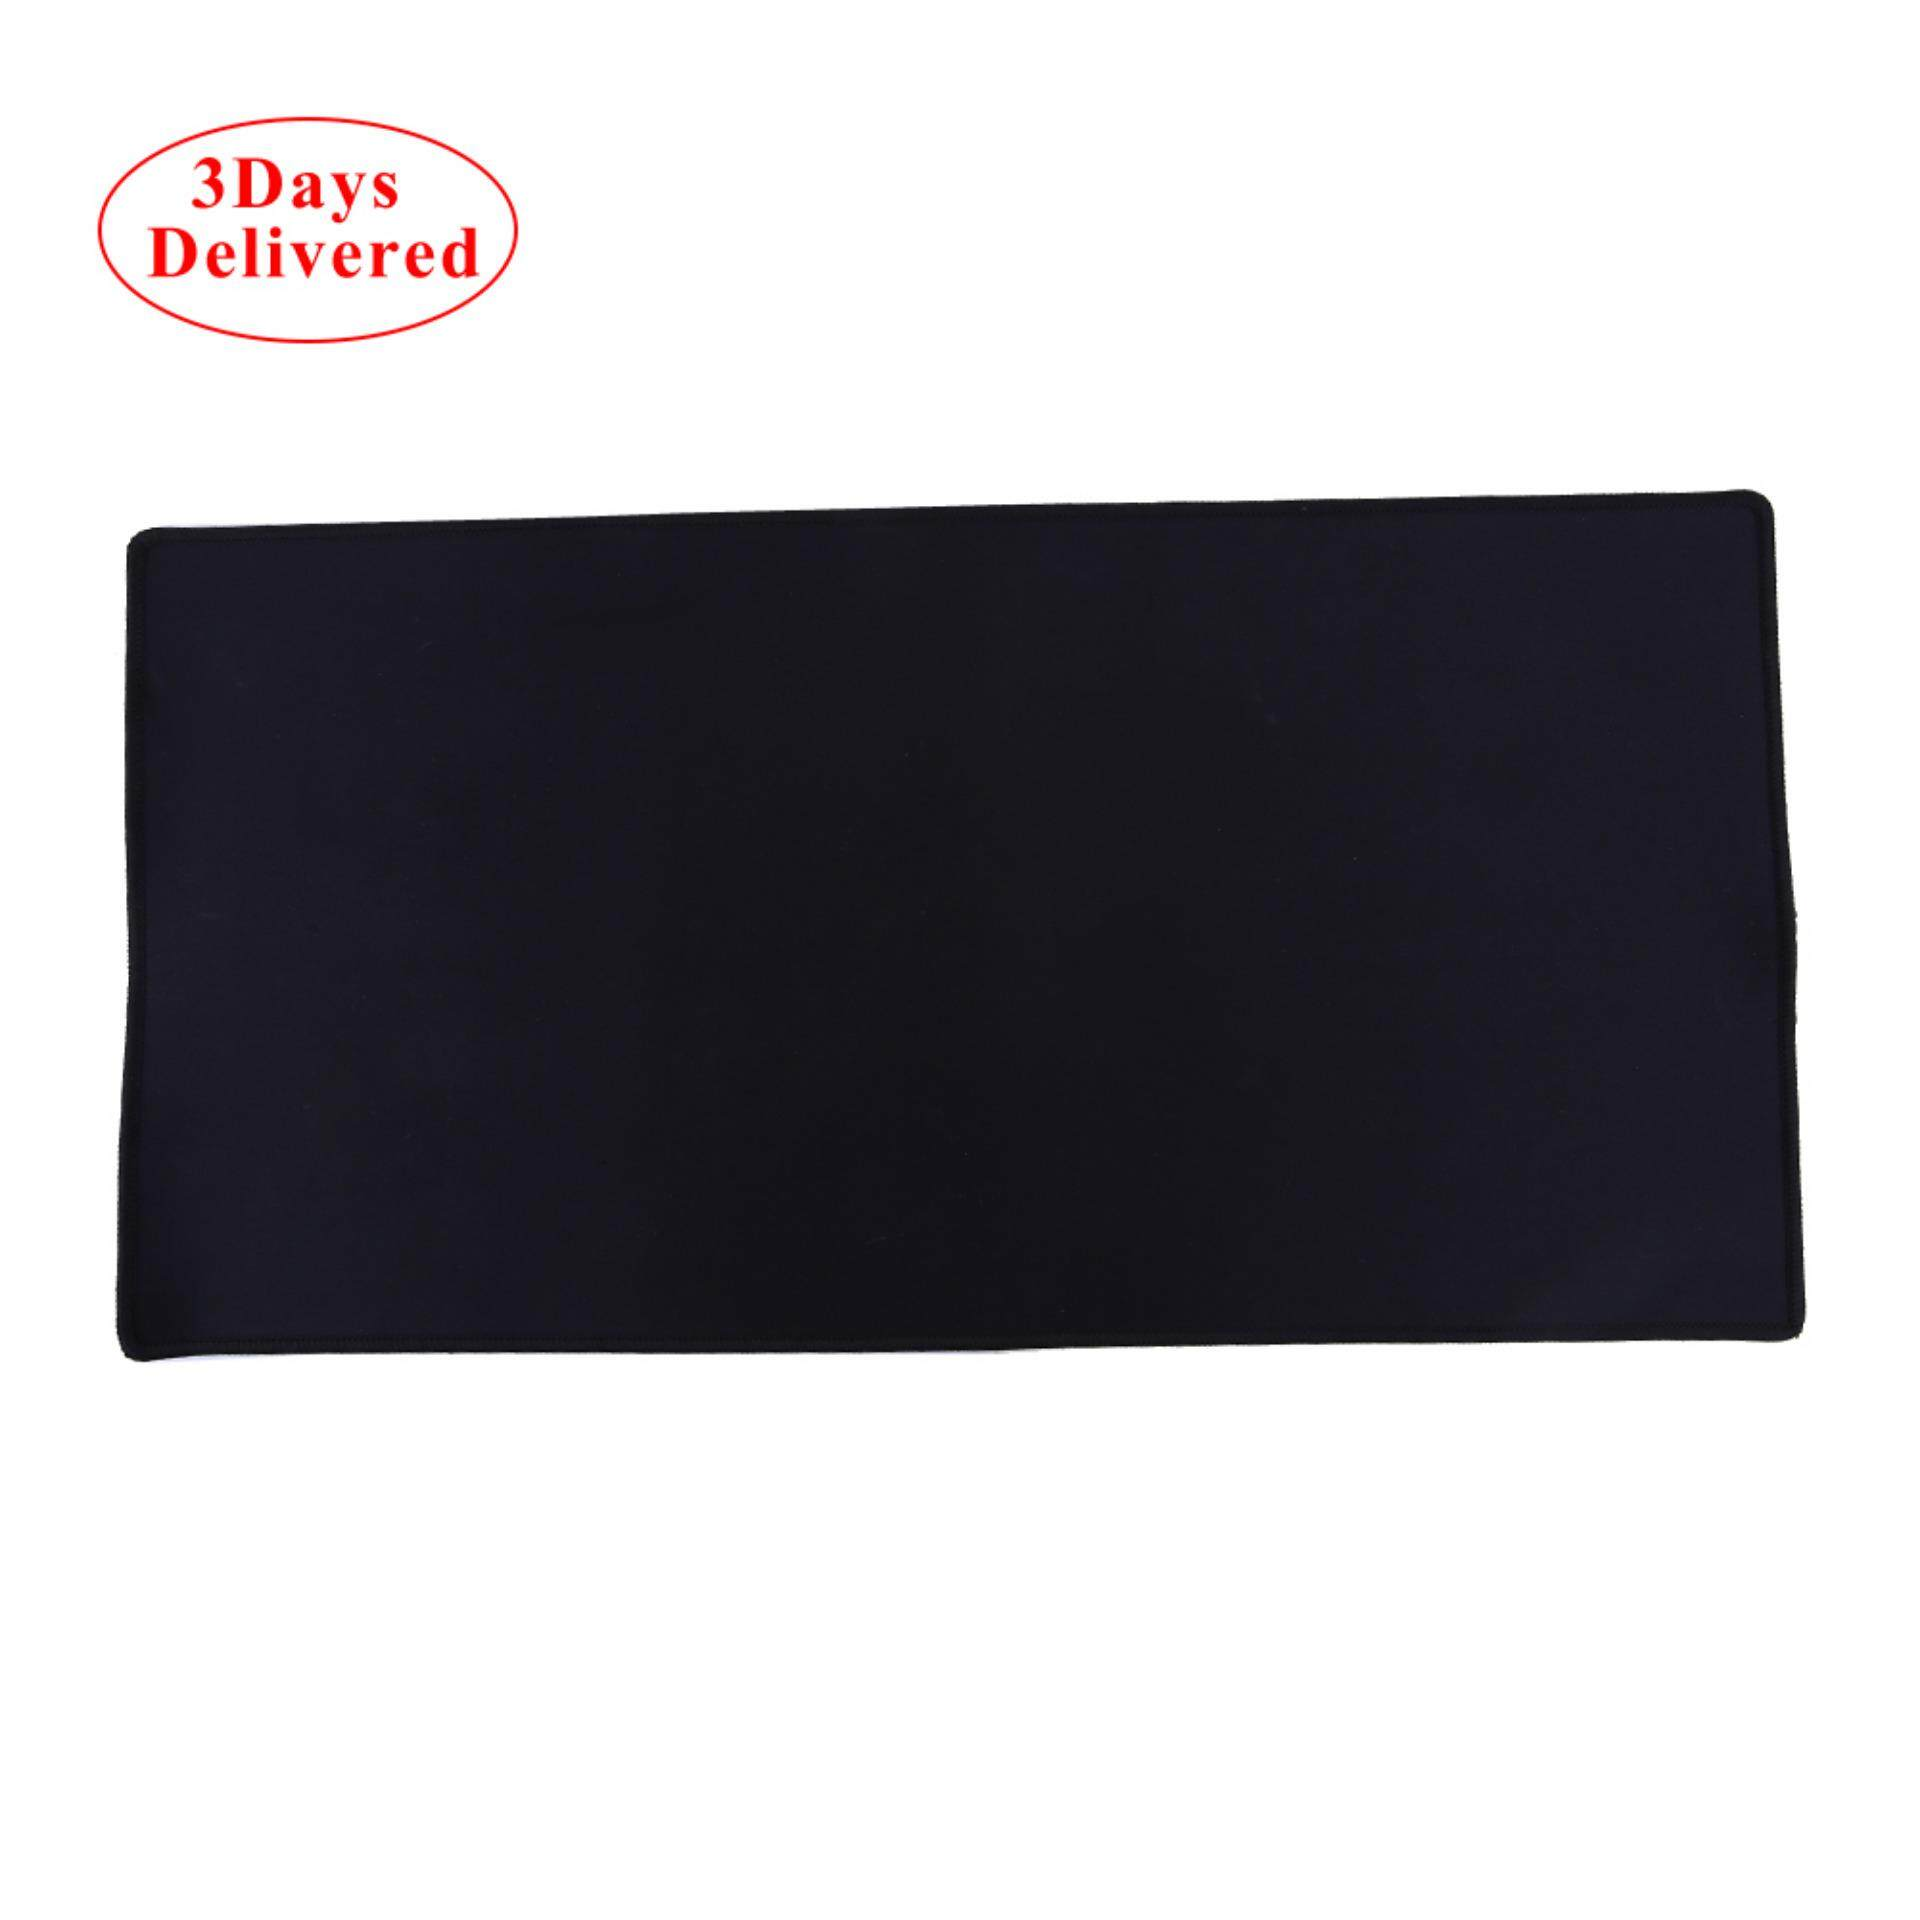 Fast Delivered within 3 DAYS + Free Shipping Large Gaming Mouse Pad 60 x 30CM Computer Rubber Pro Keyboard Mats (Black) (MY) Malaysia